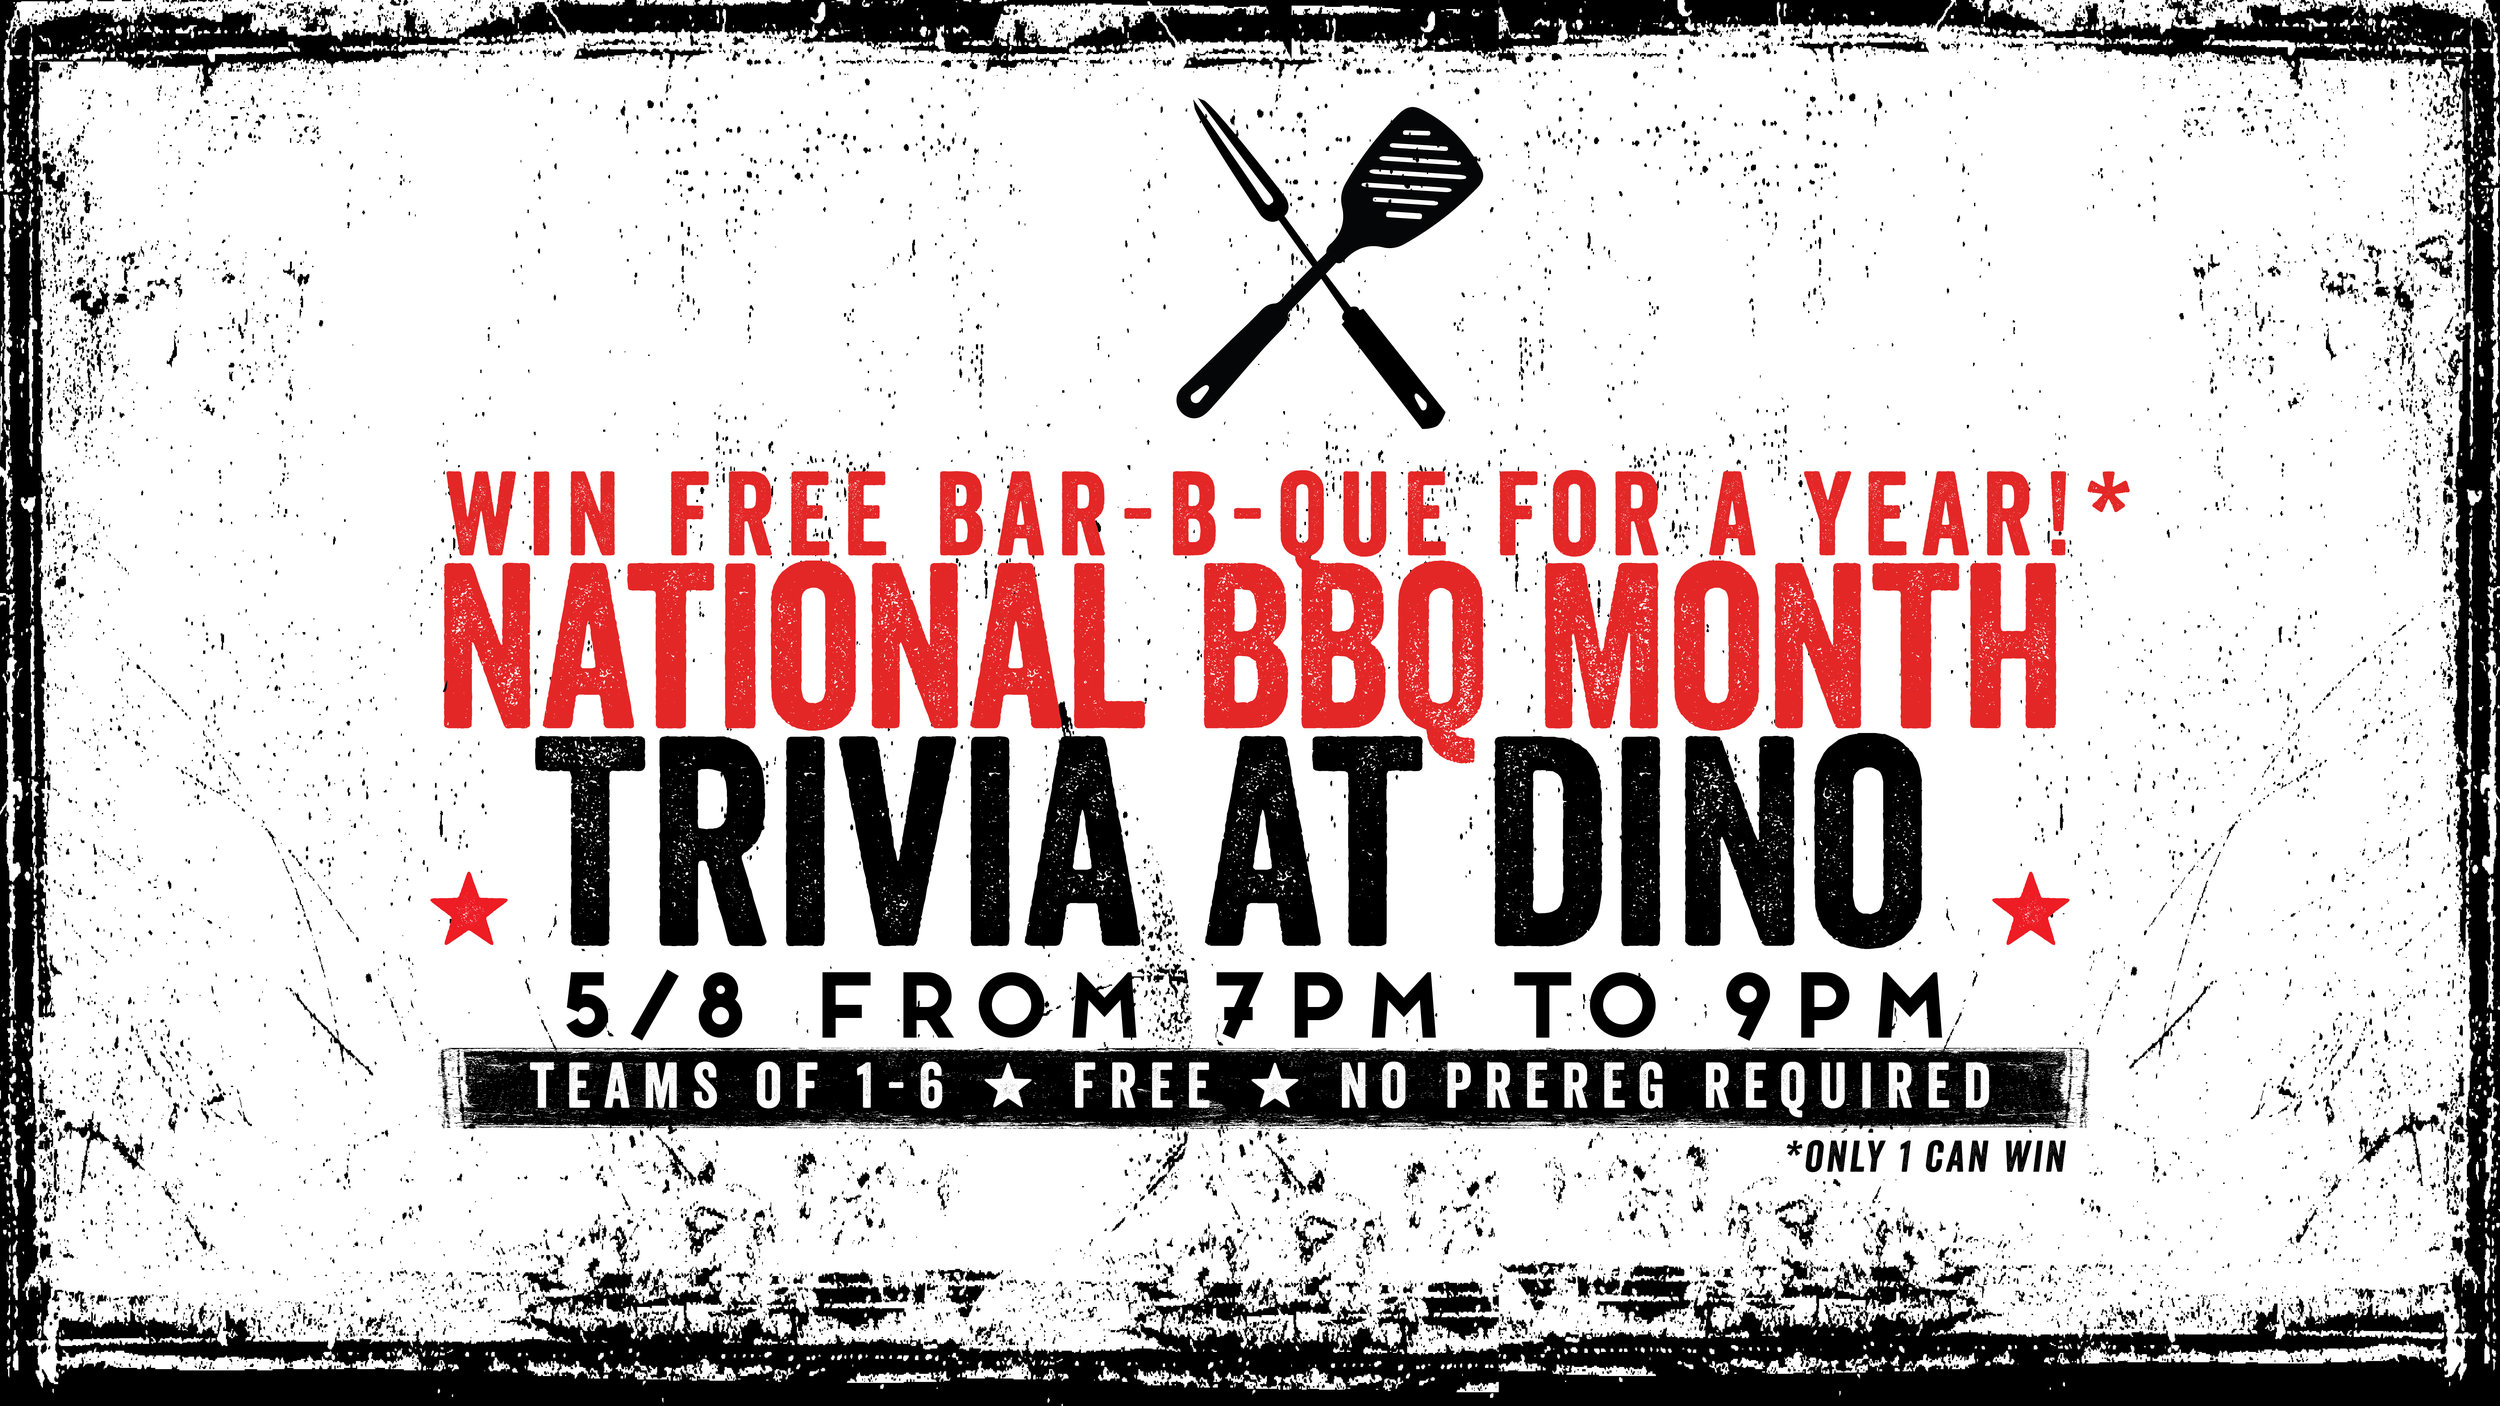 nationalbbqmonth-01.jpg